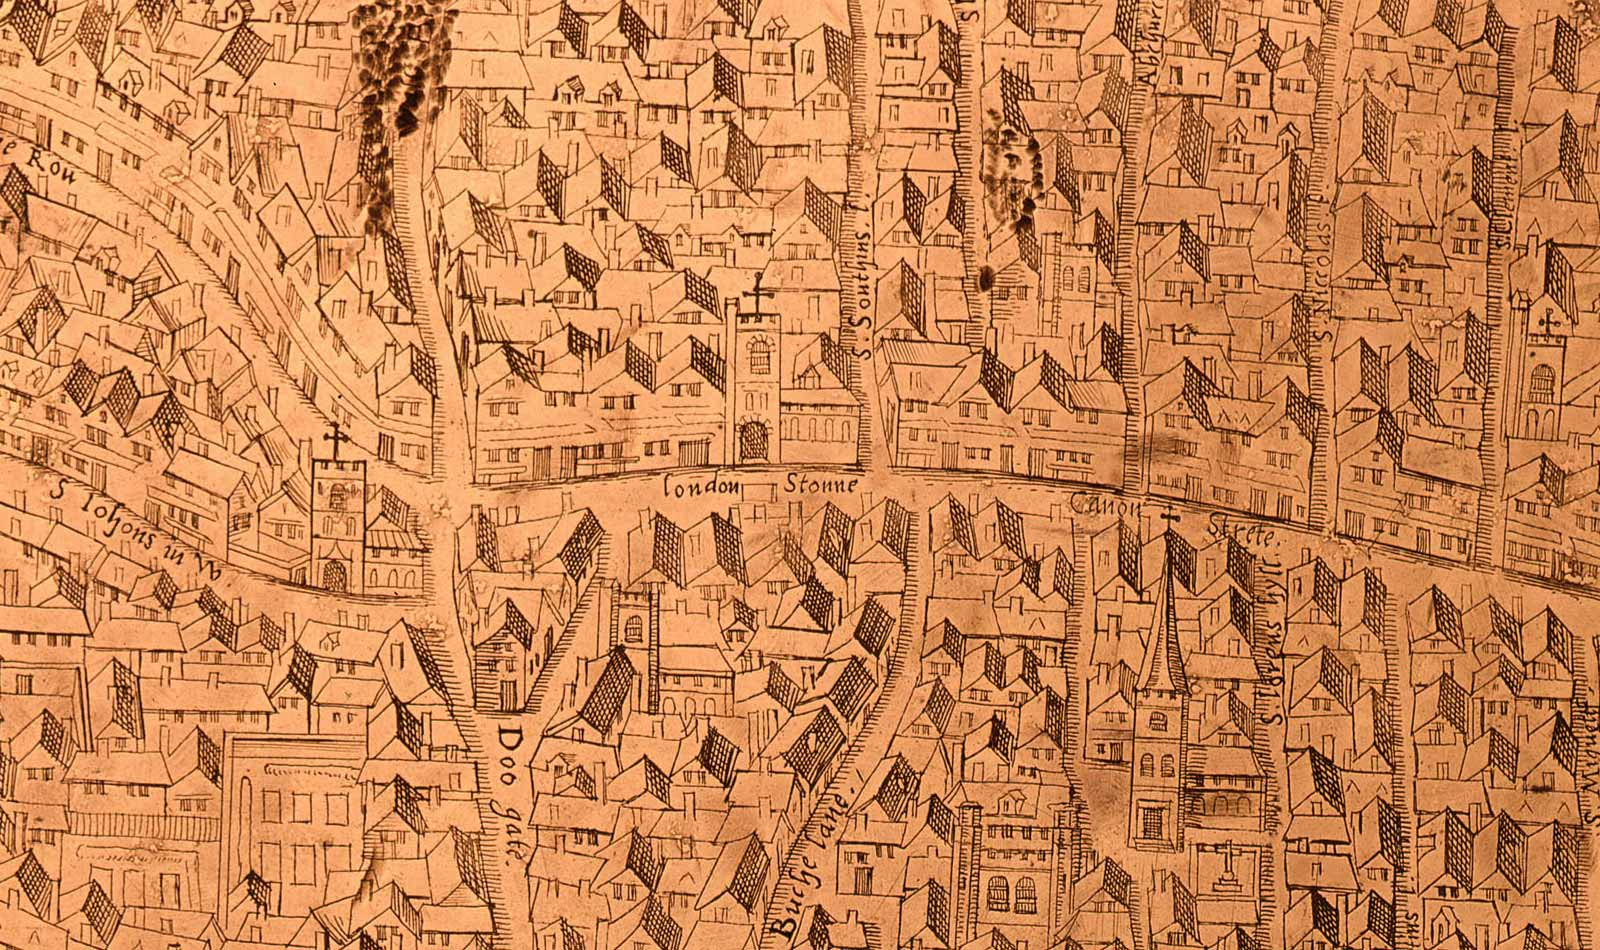 The London Stone shown on the first copperplate map of London, 1558.